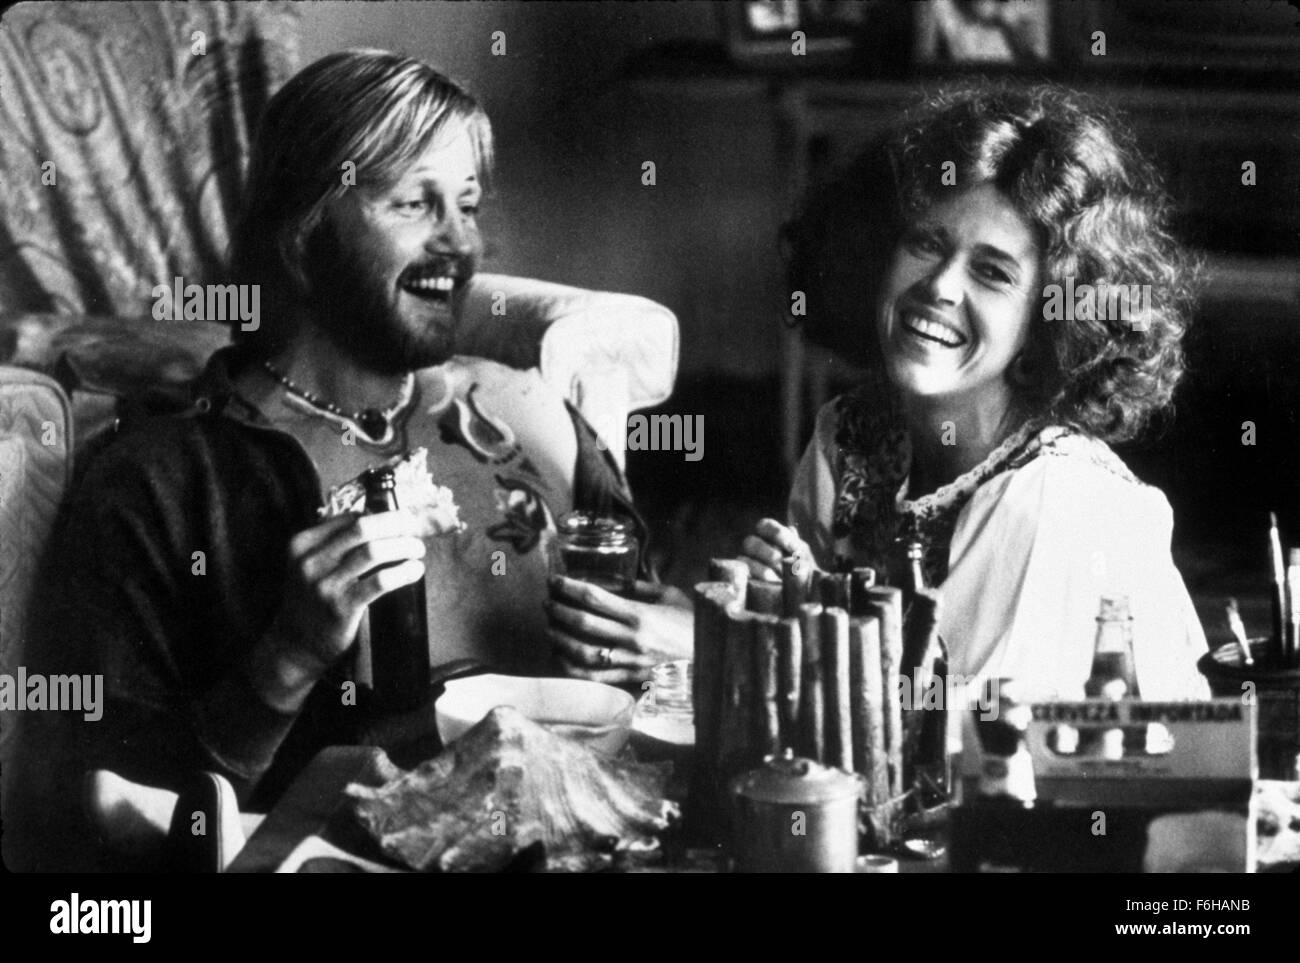 hal ashby being there